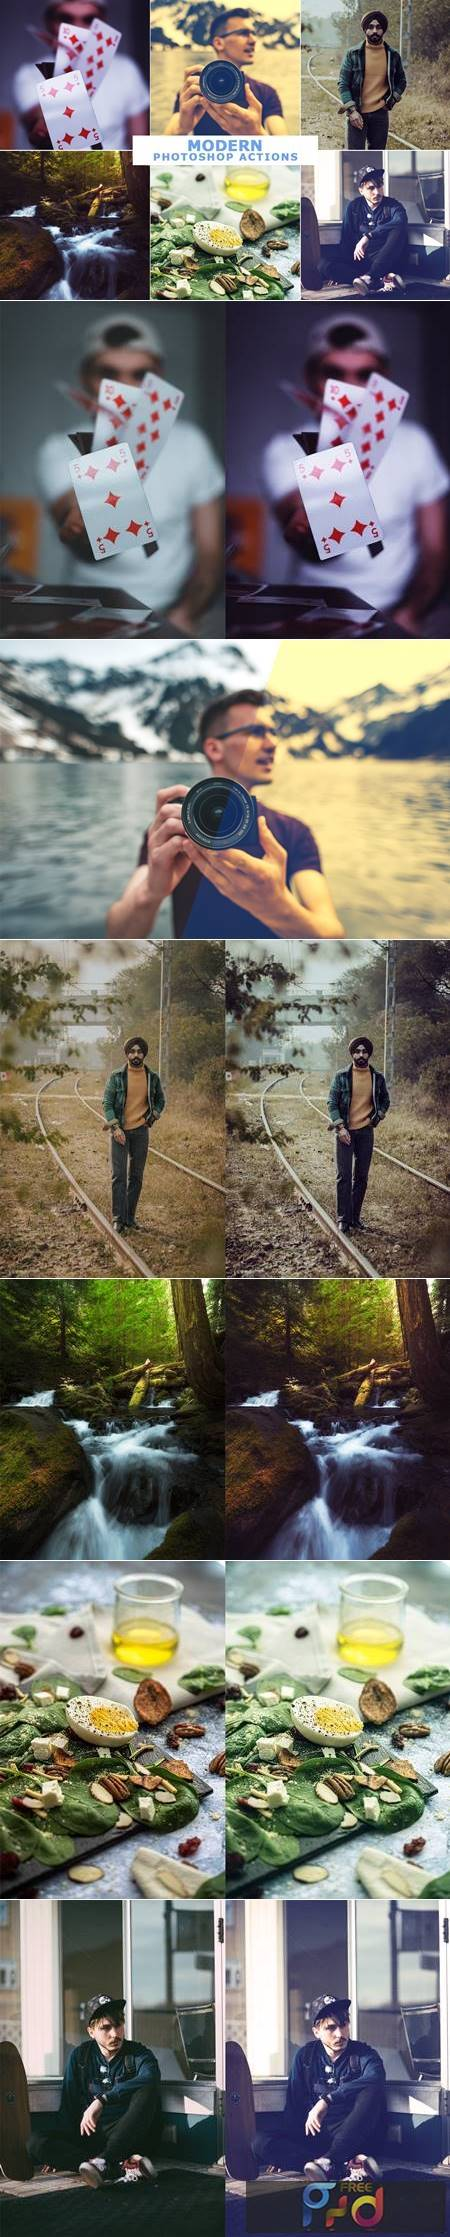 40 Modern Photoshop Actions 9 4729846 1